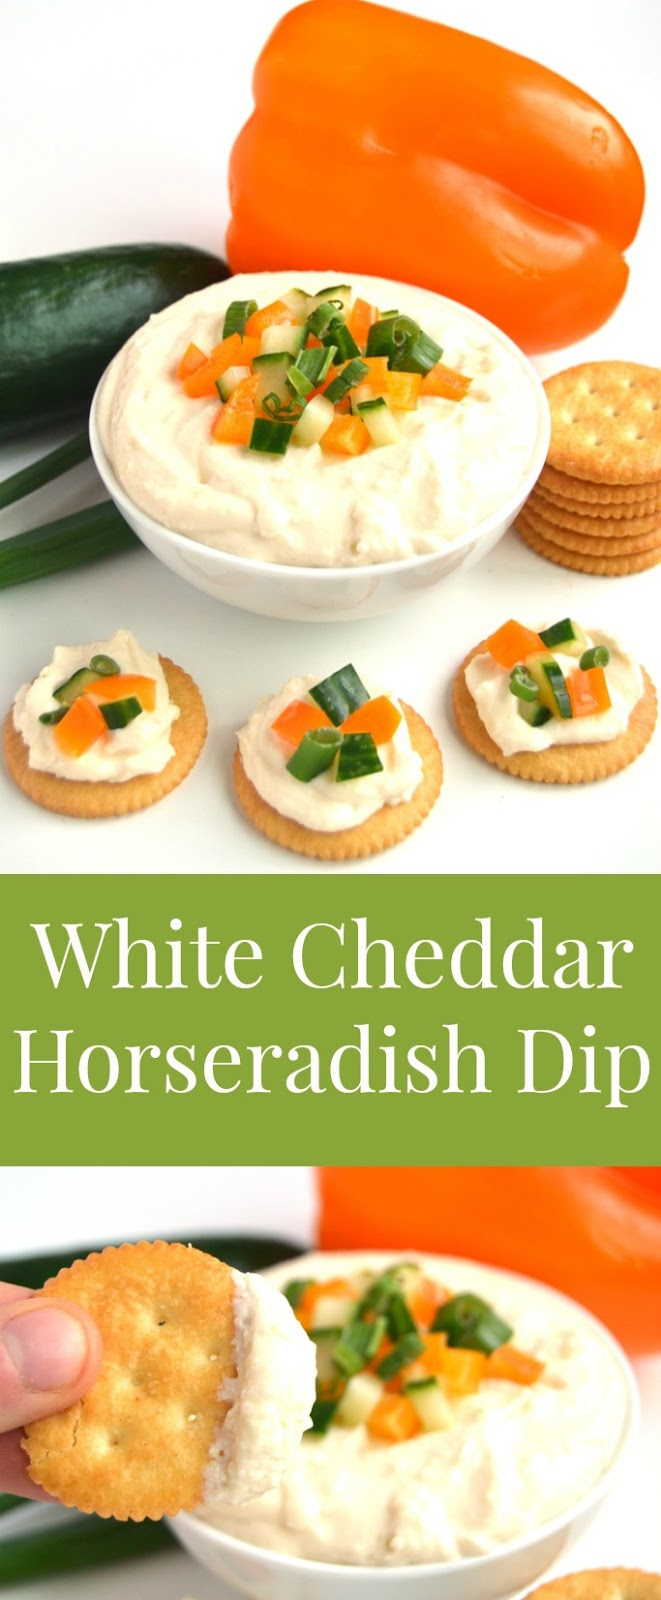 White Cheddar Horseradish Dip is ready in 5 minutes, has just 4 ingredients and is full of flavor with sharp white cheddar cheese and tangy horseradish! Topped with finely diced vegetables and served with crackers for an easy appetizer. www.nutritionistreviews.com